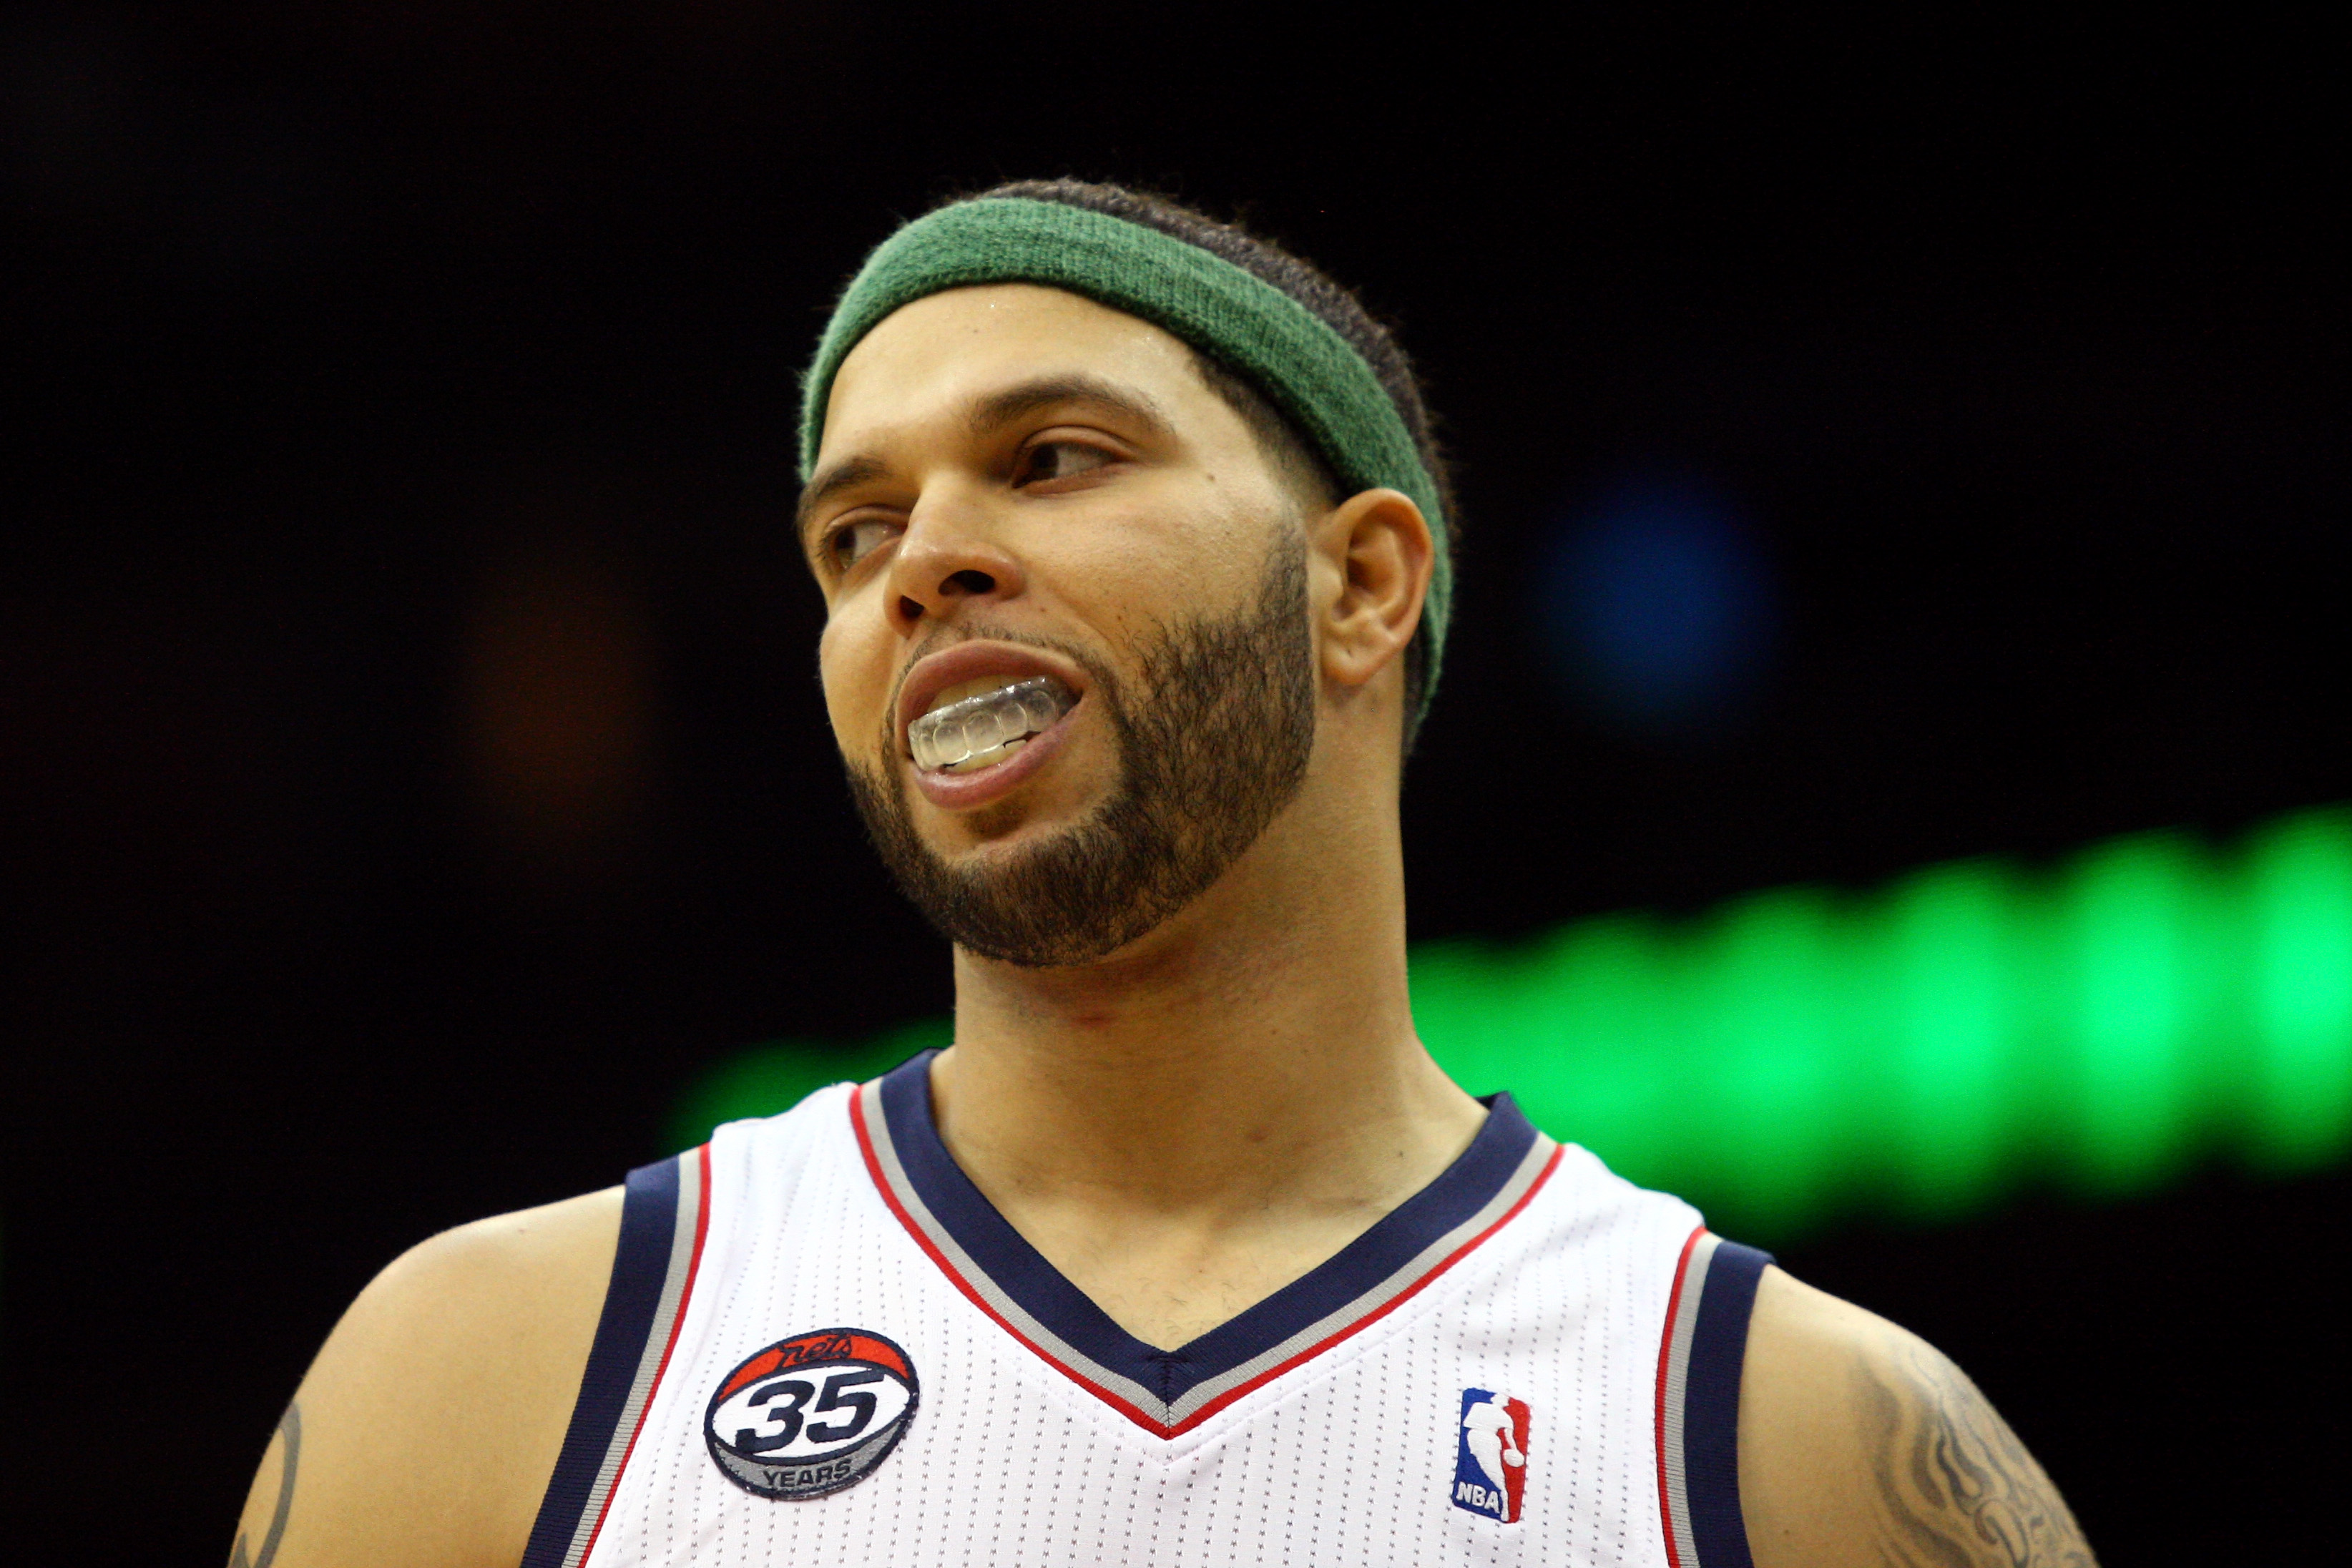 Deron Williams doesn't want to stay with the Nets unless they become an instant contender. (Getty Images)